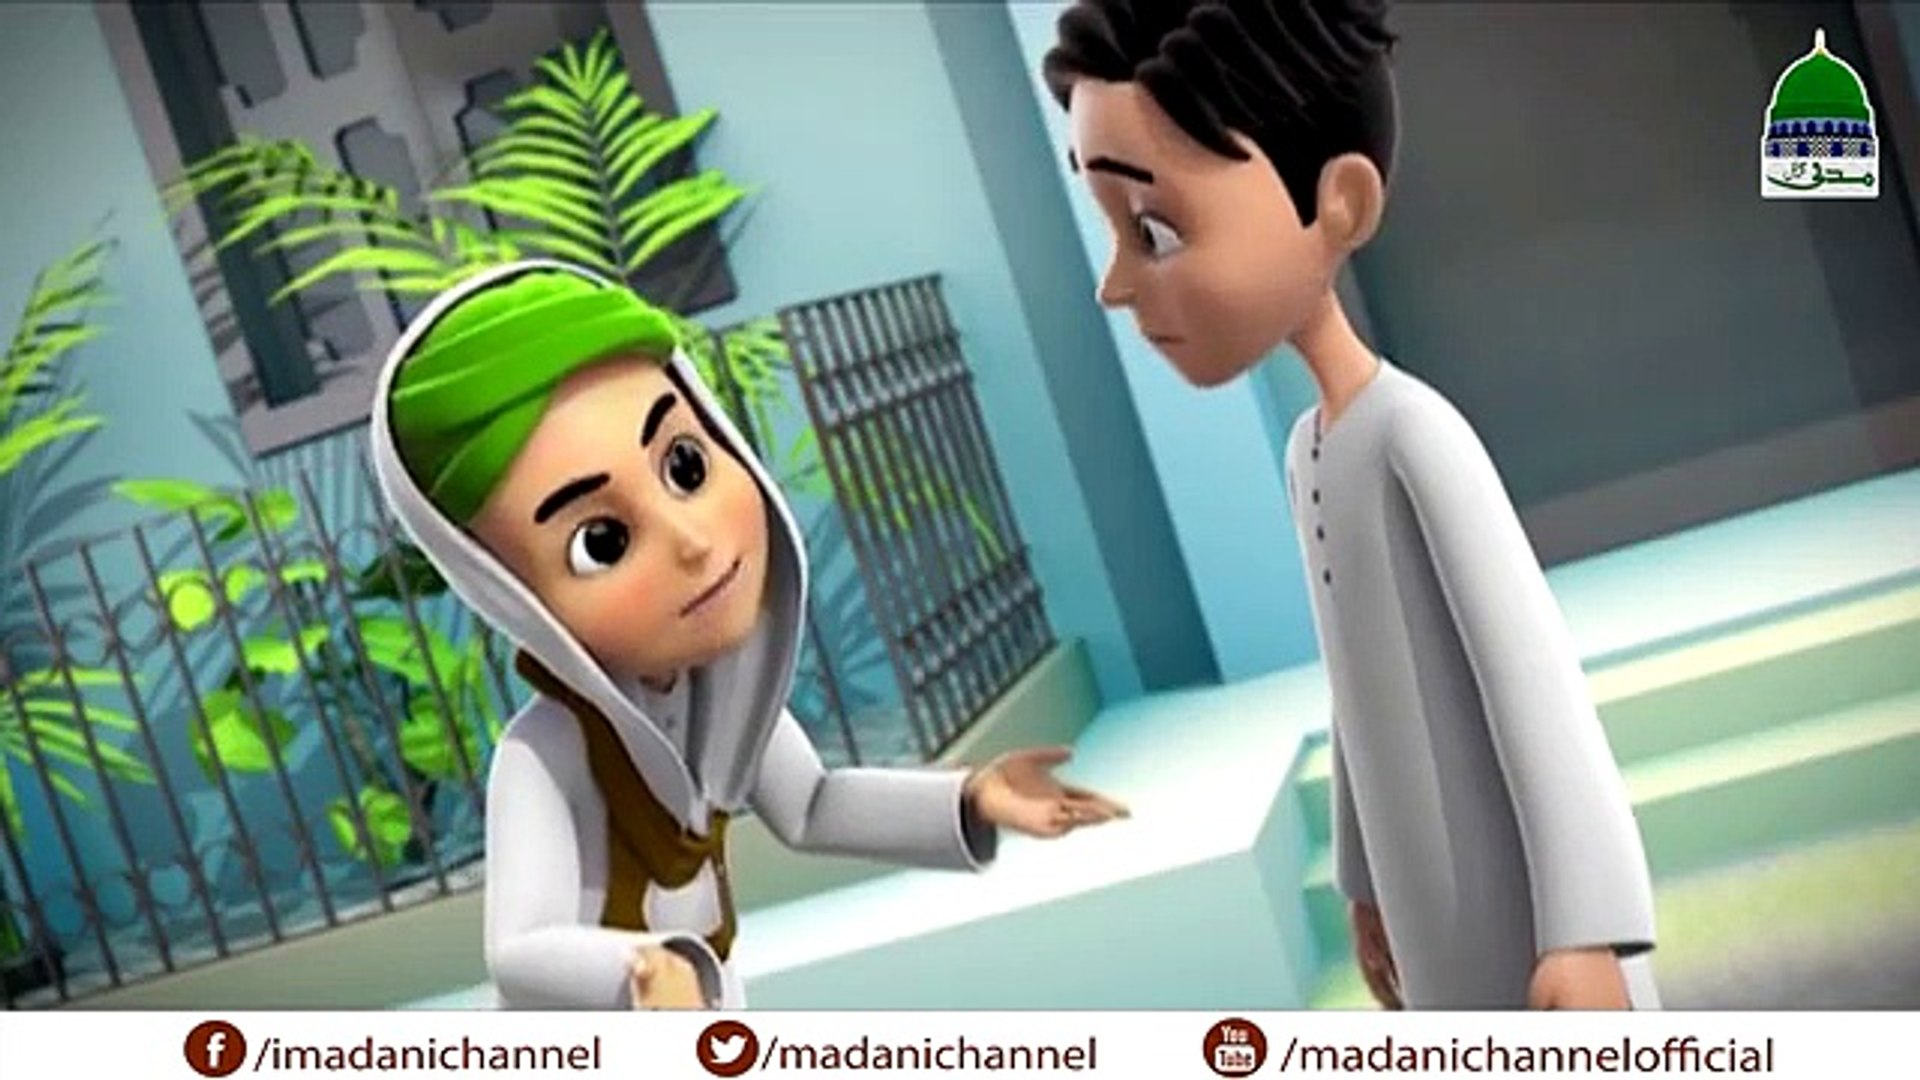 Islamic Kids Cartoon - 3D Animation - Kid Deals with Robbers - Kids Animation